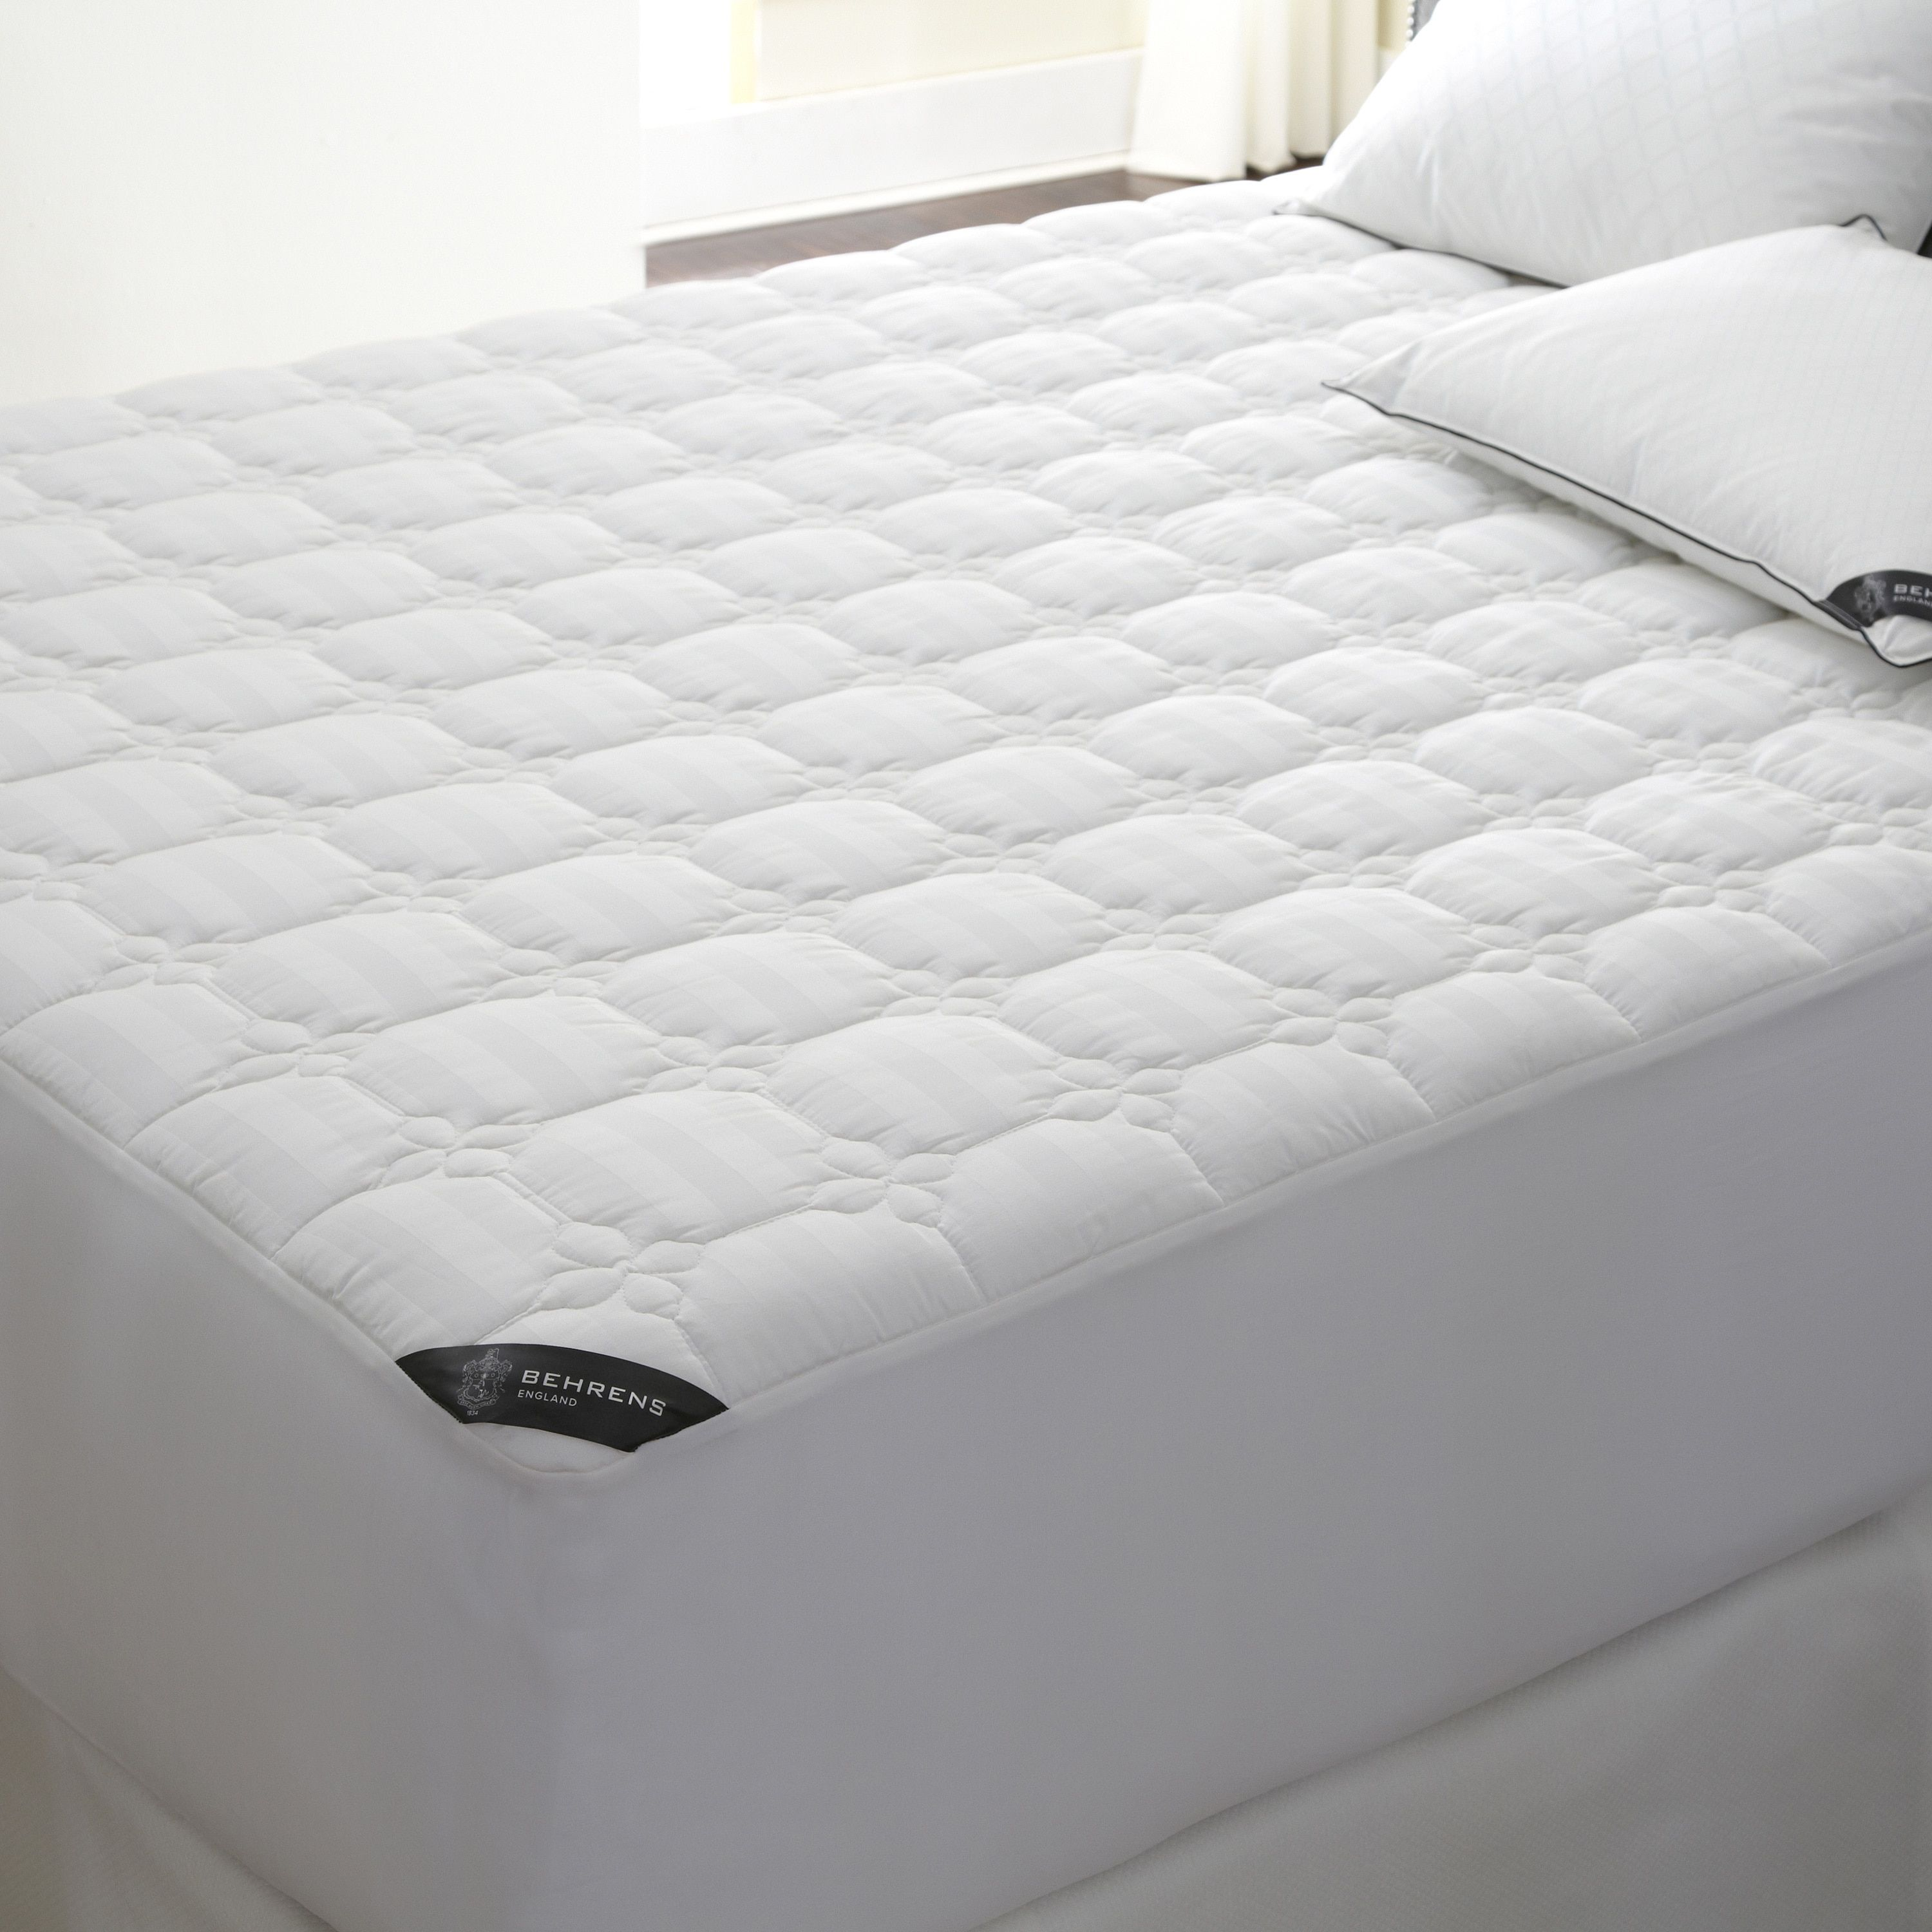 gallery plastic wetting bed furniture luxury twin waterproof fresh fitted mattress cooling topper protector of size cover vinyl